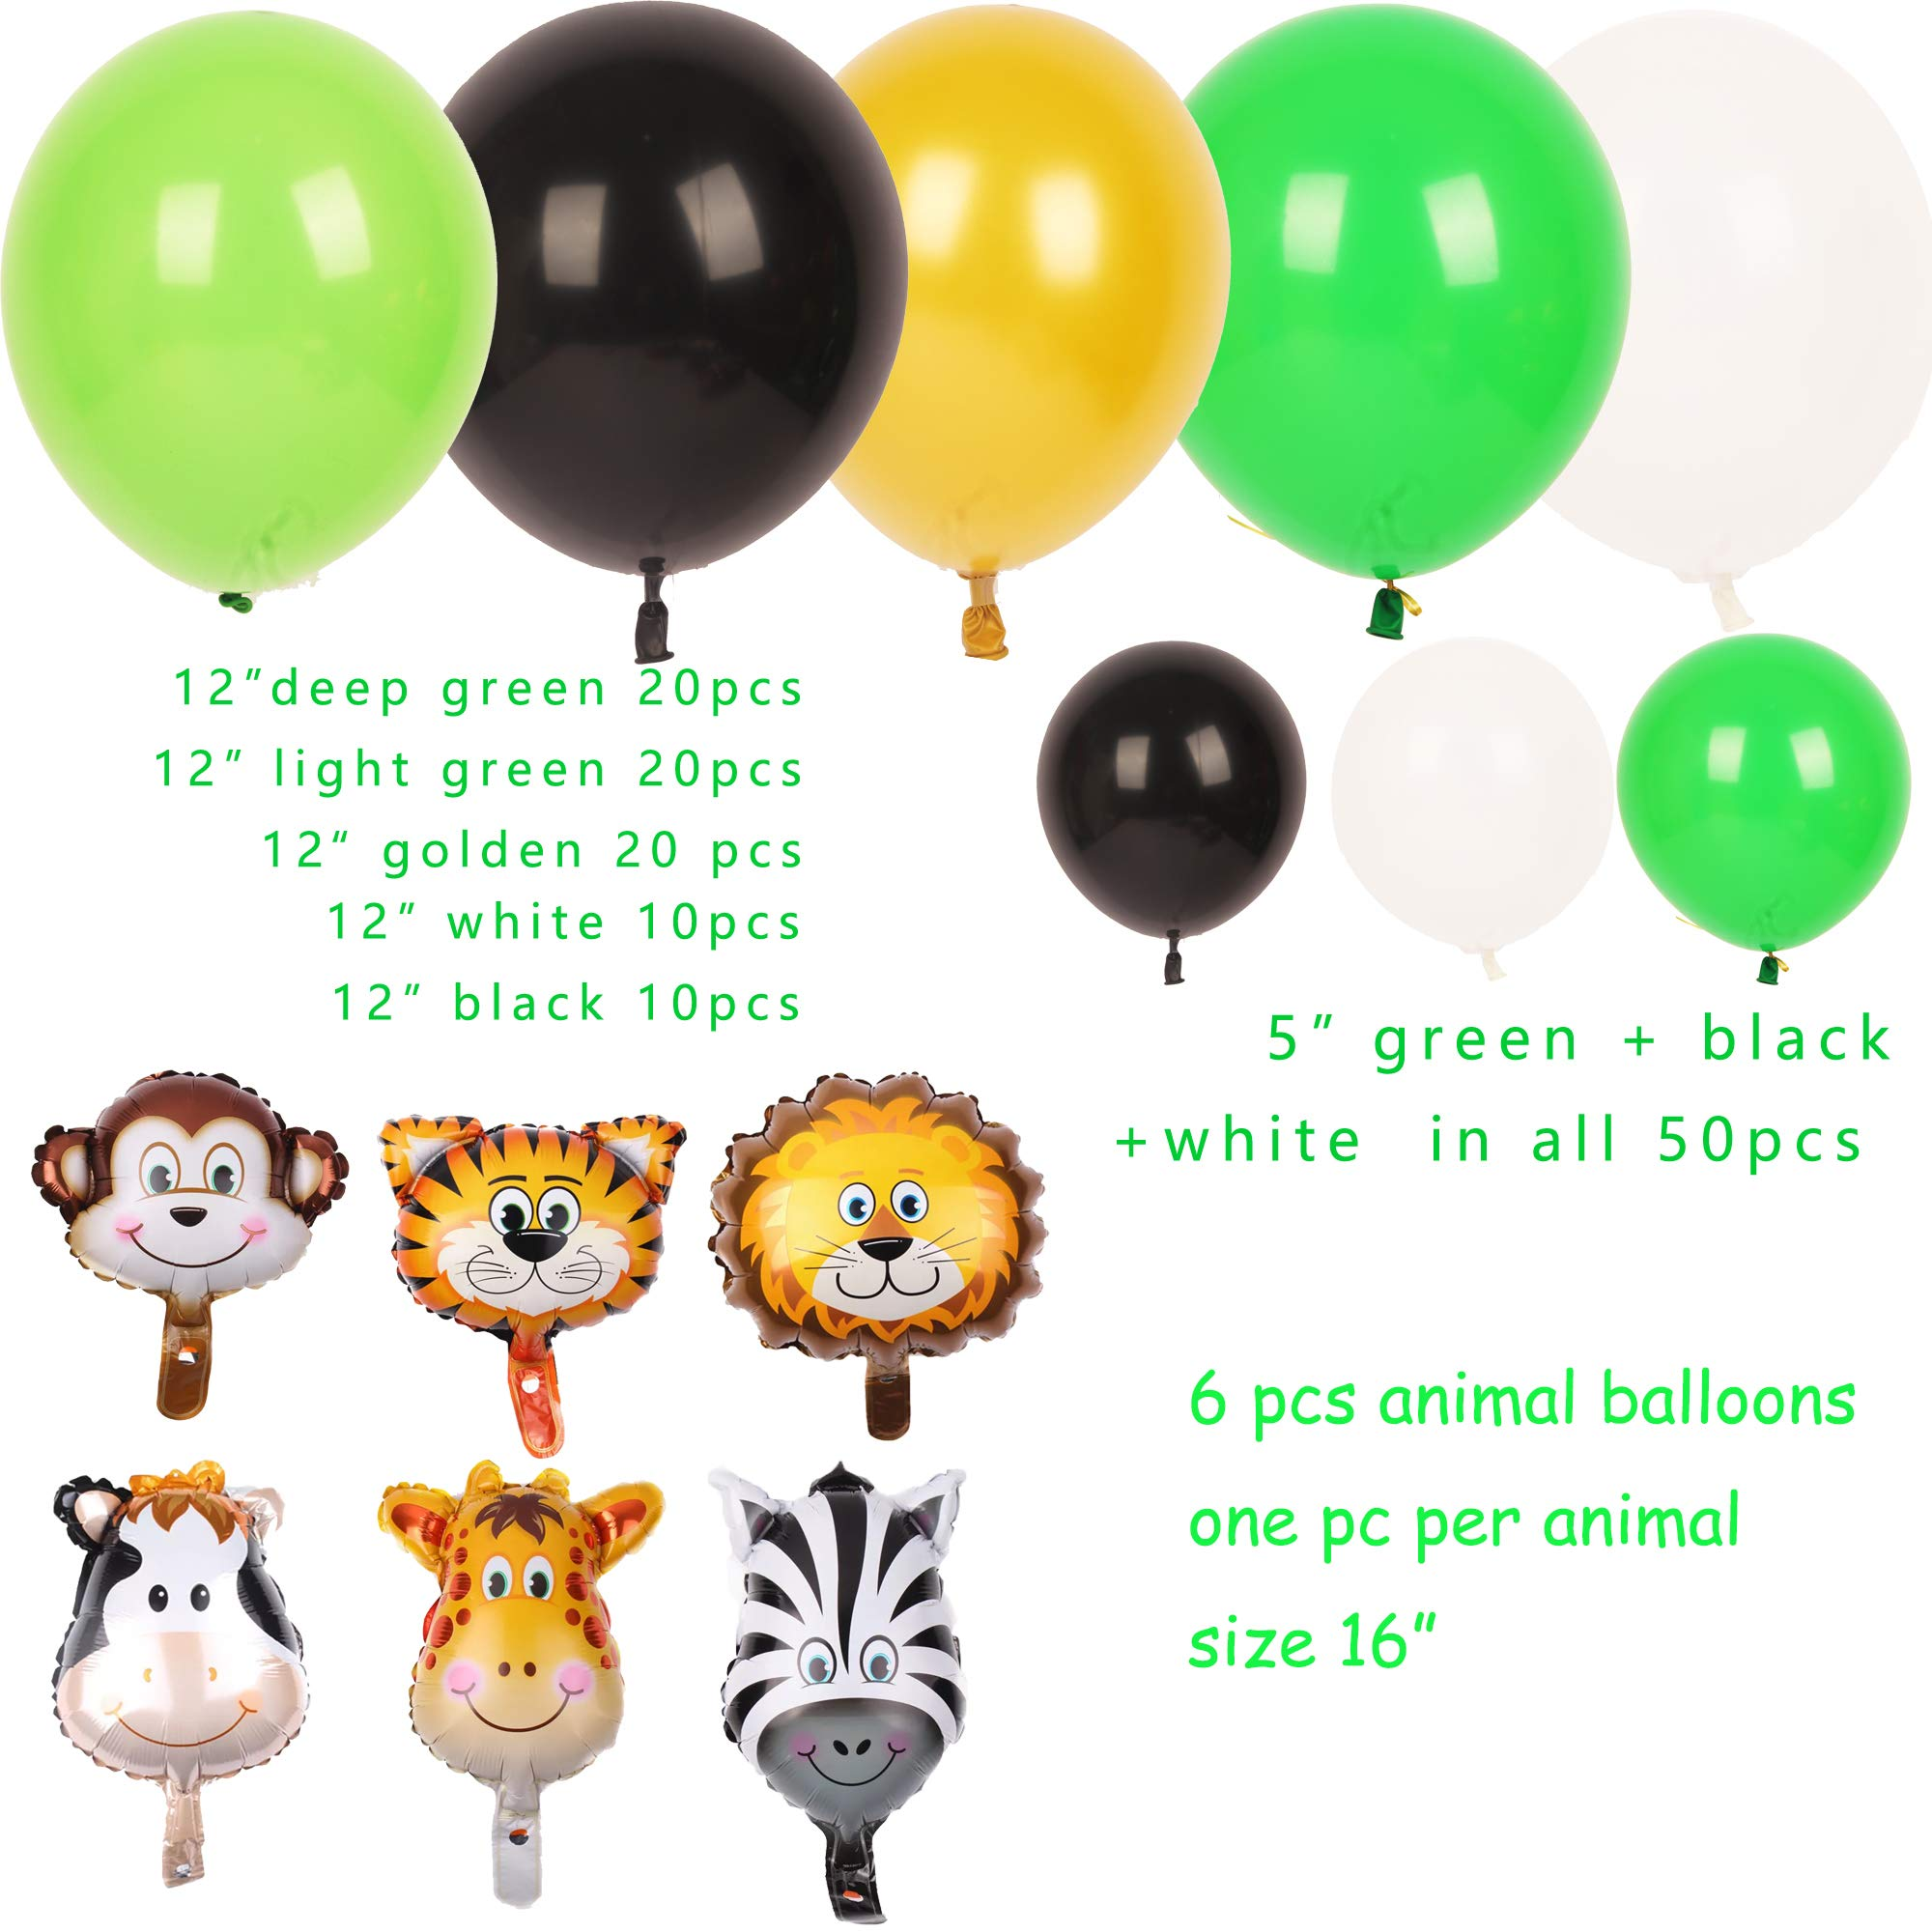 Jungle Safari Theme Party Decorations 174pcs:130 latex balloons,24 Green Palm Leaves, 16 feets Arch Balloon strip tape, 2 Balloon tying tools Safri party Supplies and Favors for Kids Boys Birthday Baby Shower Decor by foci cozi (Image #3)